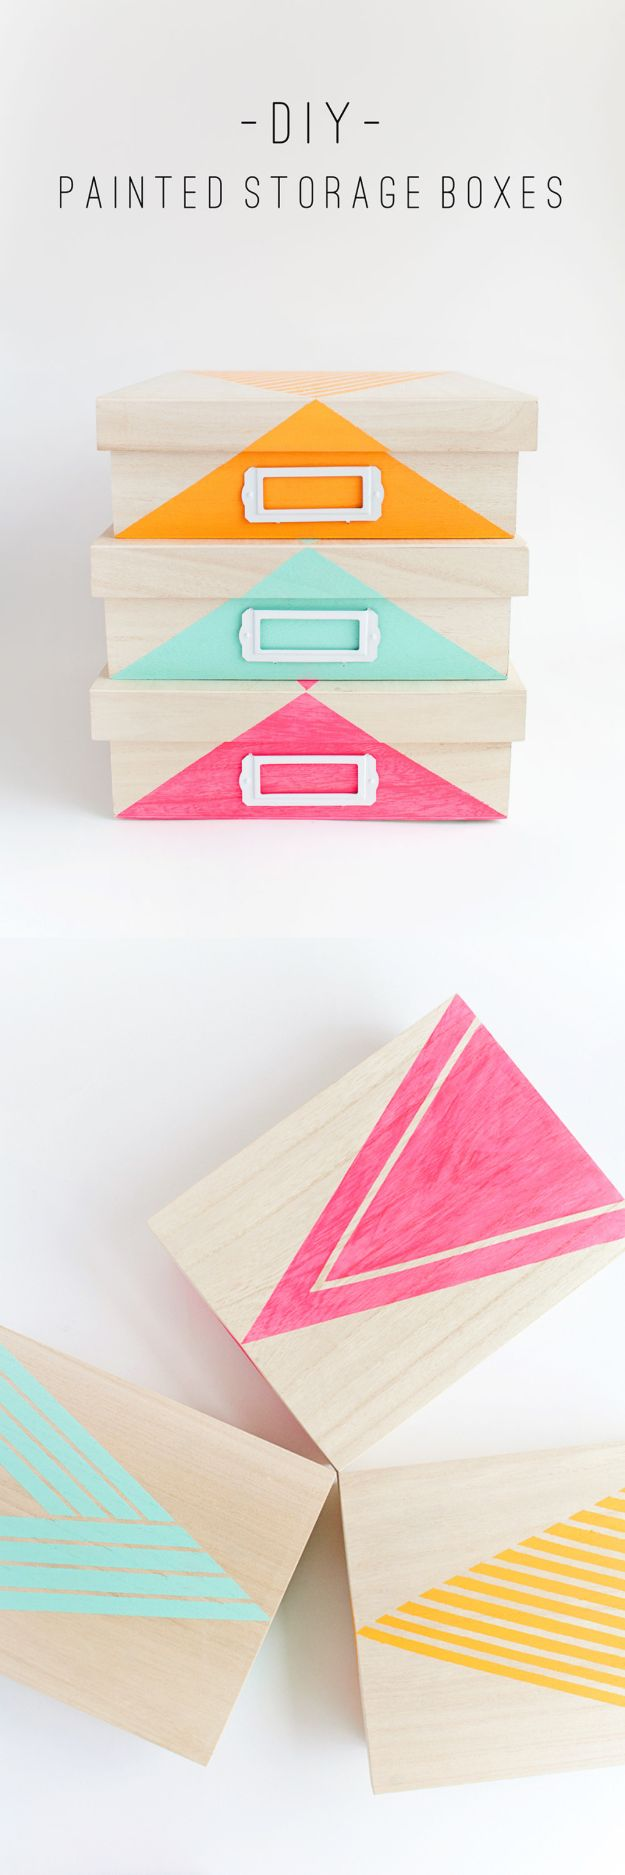 Cheap Last Minute Gifts DIY - DIY Painted Storage Boxes - Inexpensive DIY Gift Ideas To Make On A Budget - Homemade Christmas and Birthday Presents to Make For Mom, Dad, Daughter & Son, Kids, Friends and Family - Cool and Creative Crafts, Home Decor and Accessories, Fun Gadgets and Phone Stuff - Quick Gifts From Dollar Tree Items http://diyjoy.com/cheap-last-minute-gifts